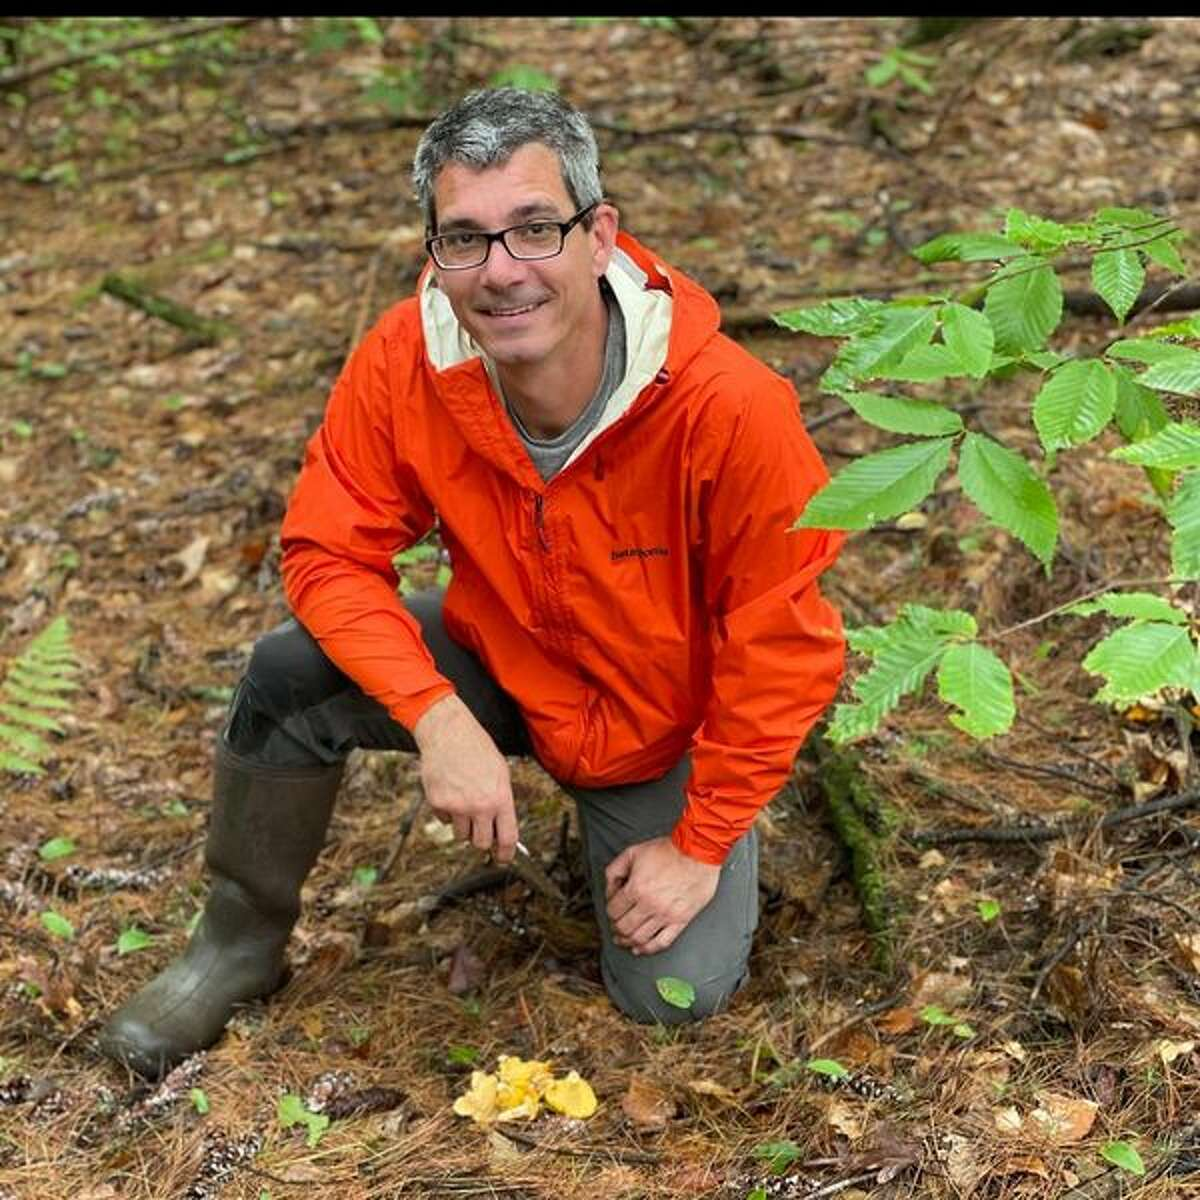 Brian Bowden, executive chef at Radici Kitchen & Bar in Glens Falls, is in the forest foraging for chanterelle mushrooms.